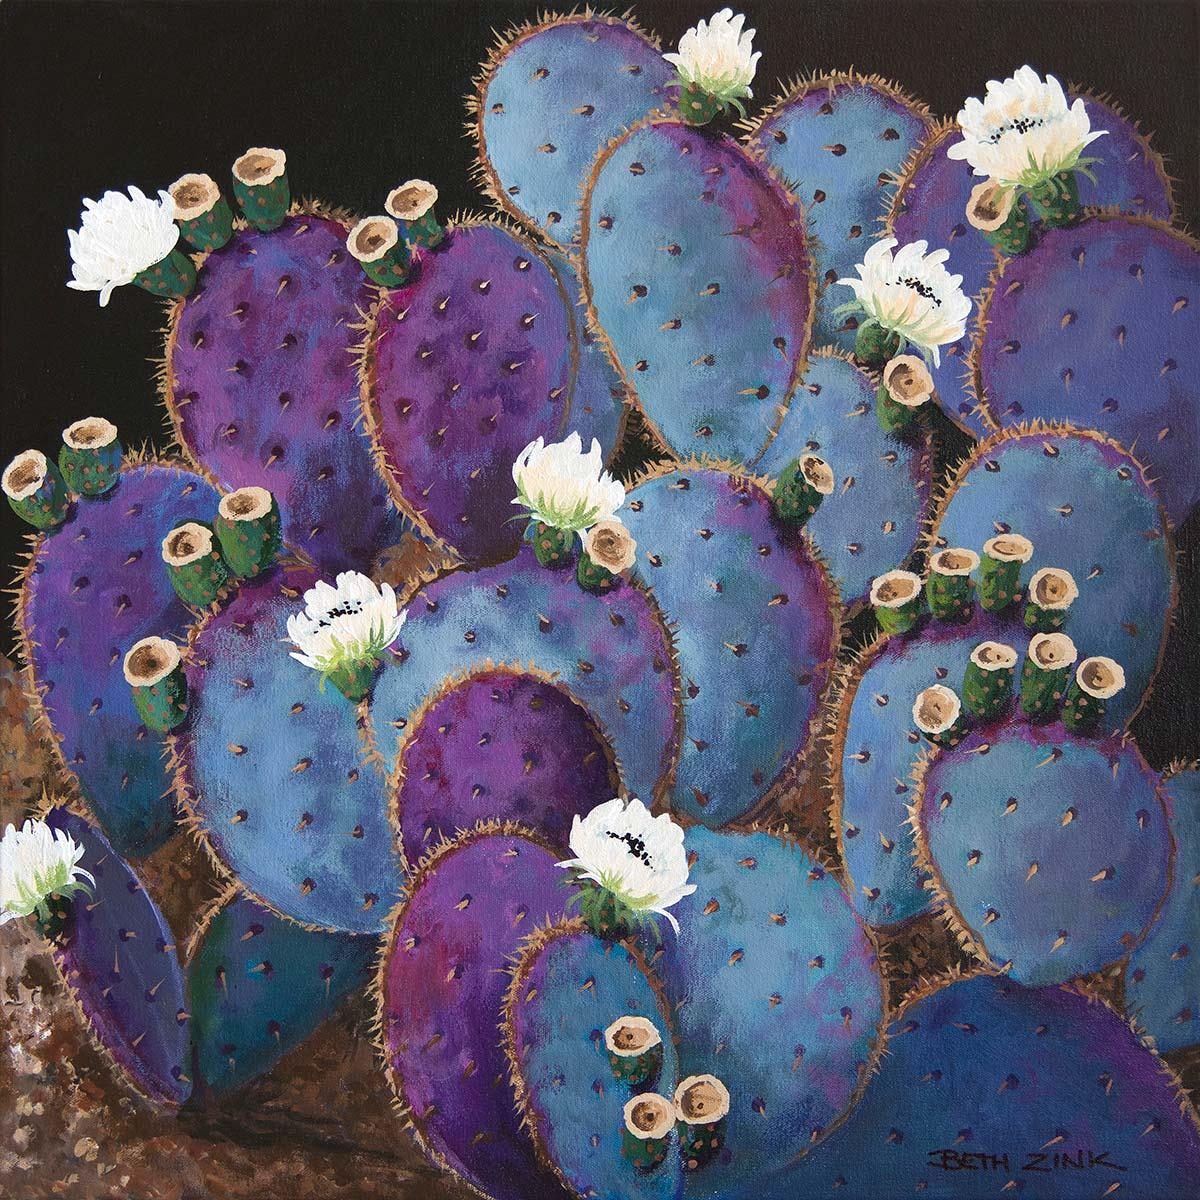 beth zink painting violet prickly pear cactus with blooming white flowers